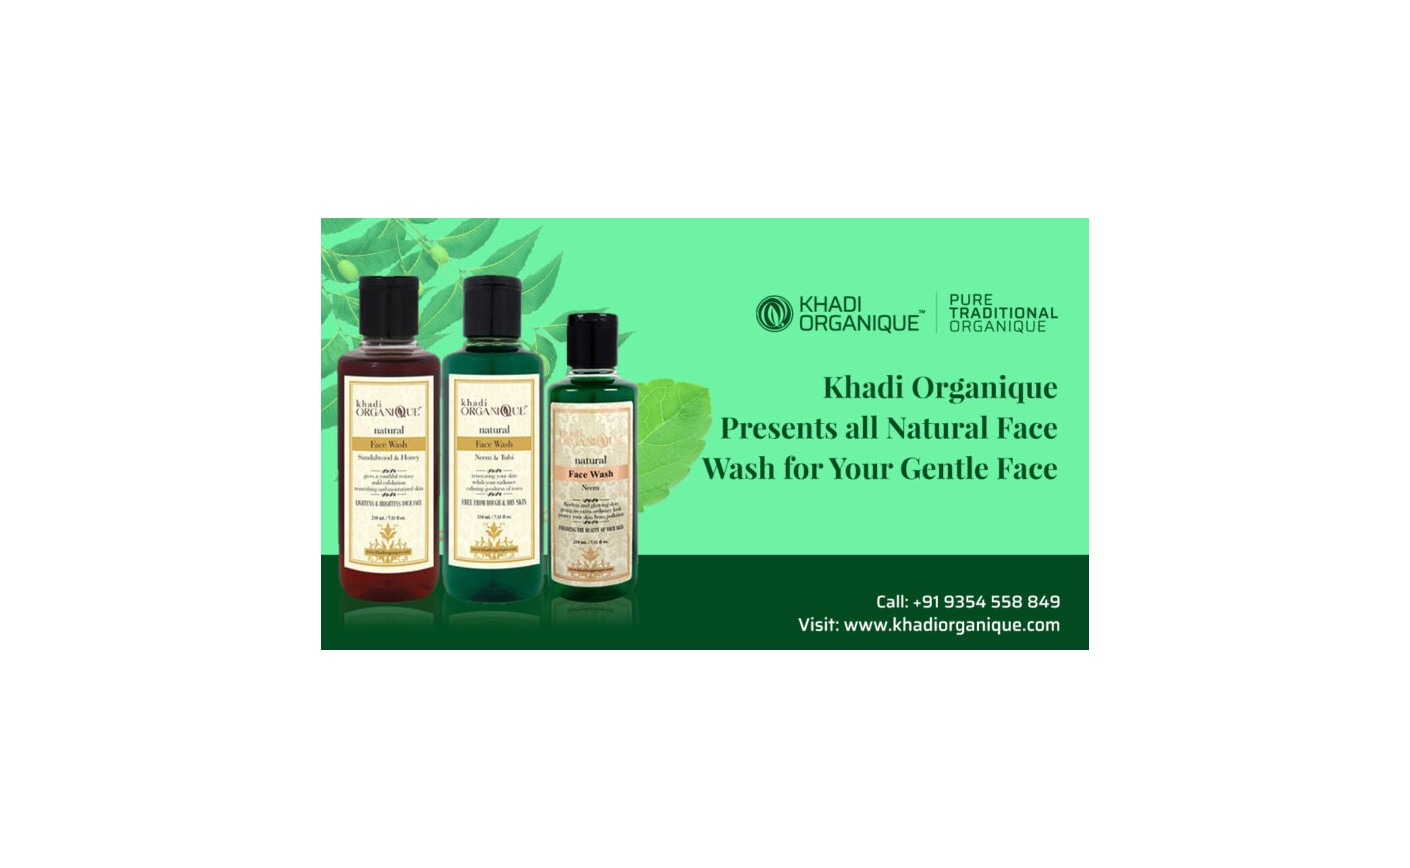 Khadi Organique Presents all Natural Face Wash for Your Gentle Face